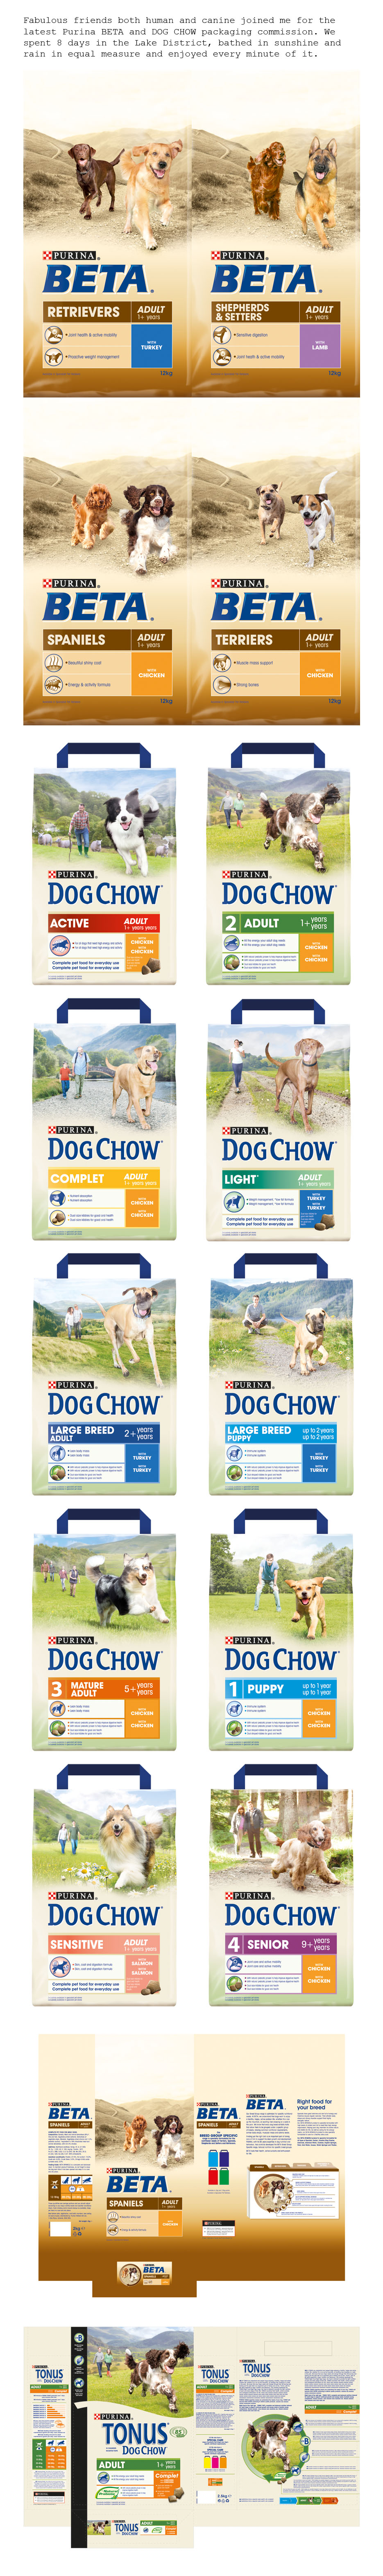 Purina Dog Chow & Beta Packaging .jpg